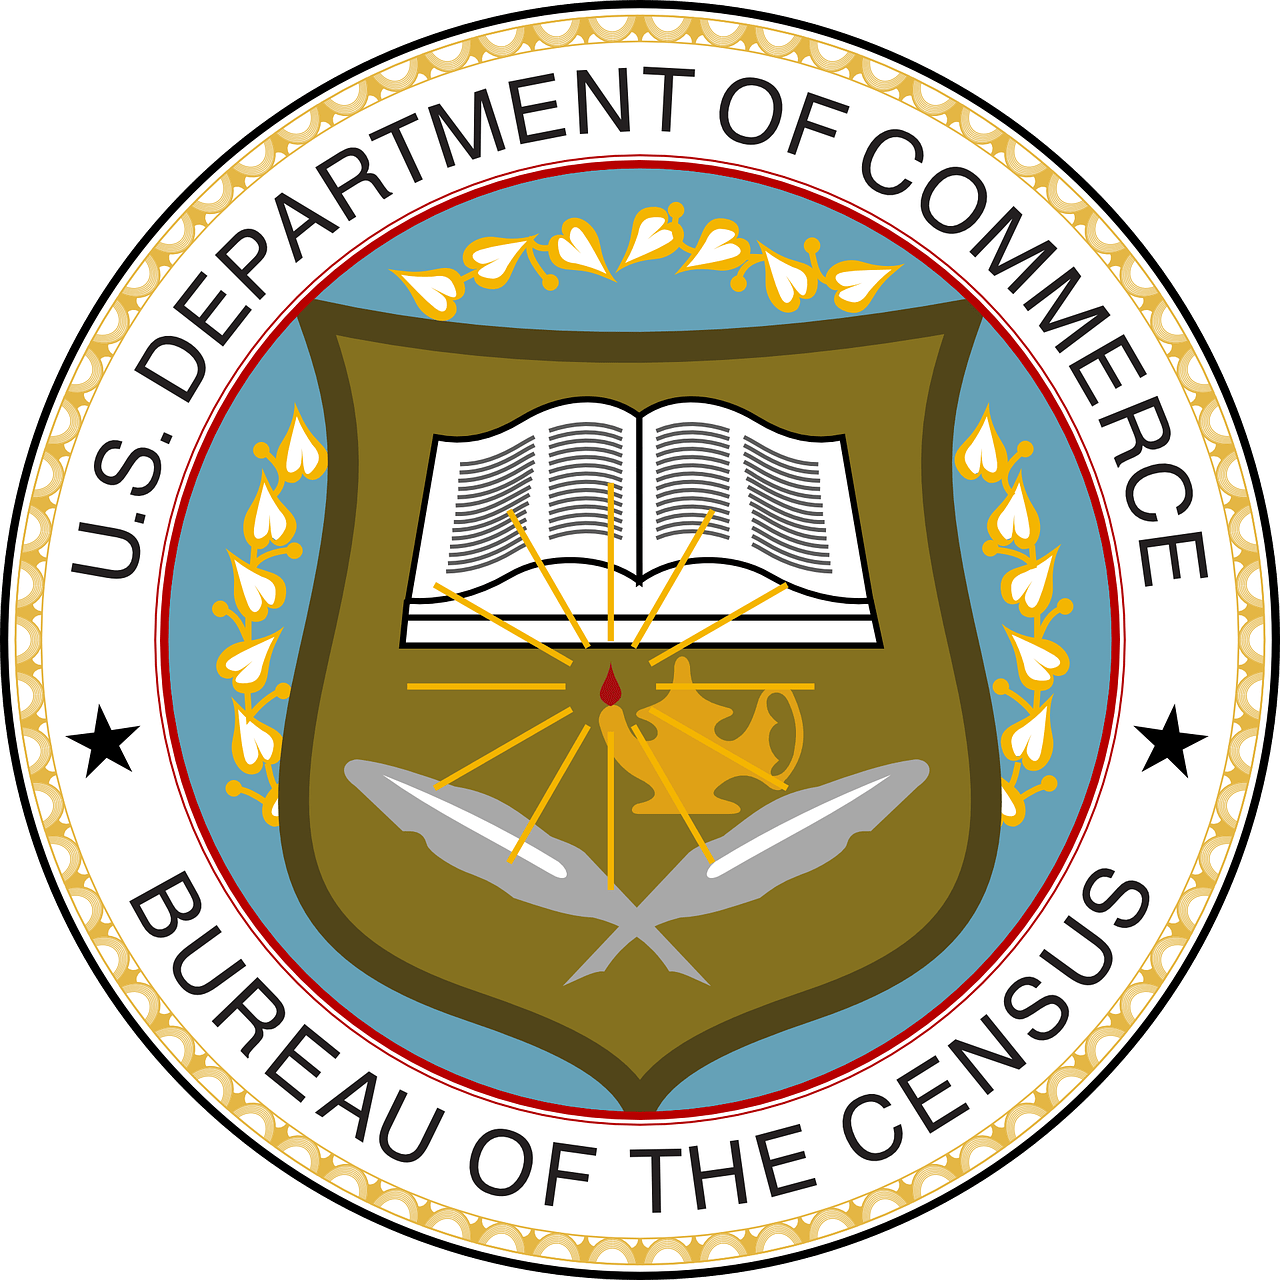 The Supreme Court Will Hear Critical Census Case On Tuesday – Here Are Related Resources